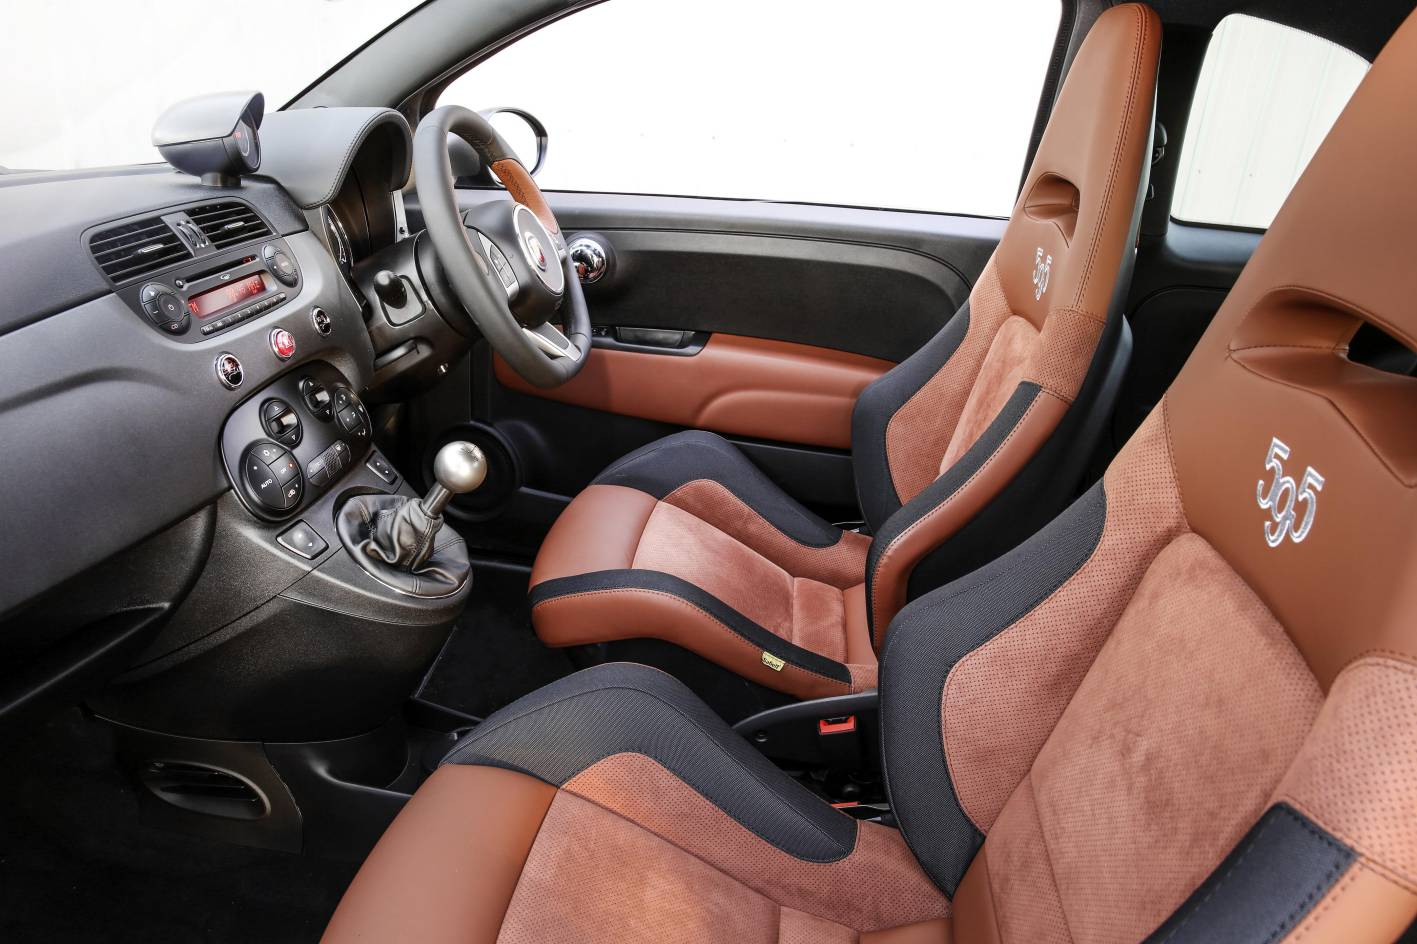 http://www.forcegt.com/wp-content/uploads/2014/08/abarth-595-competizione-interior.jpg